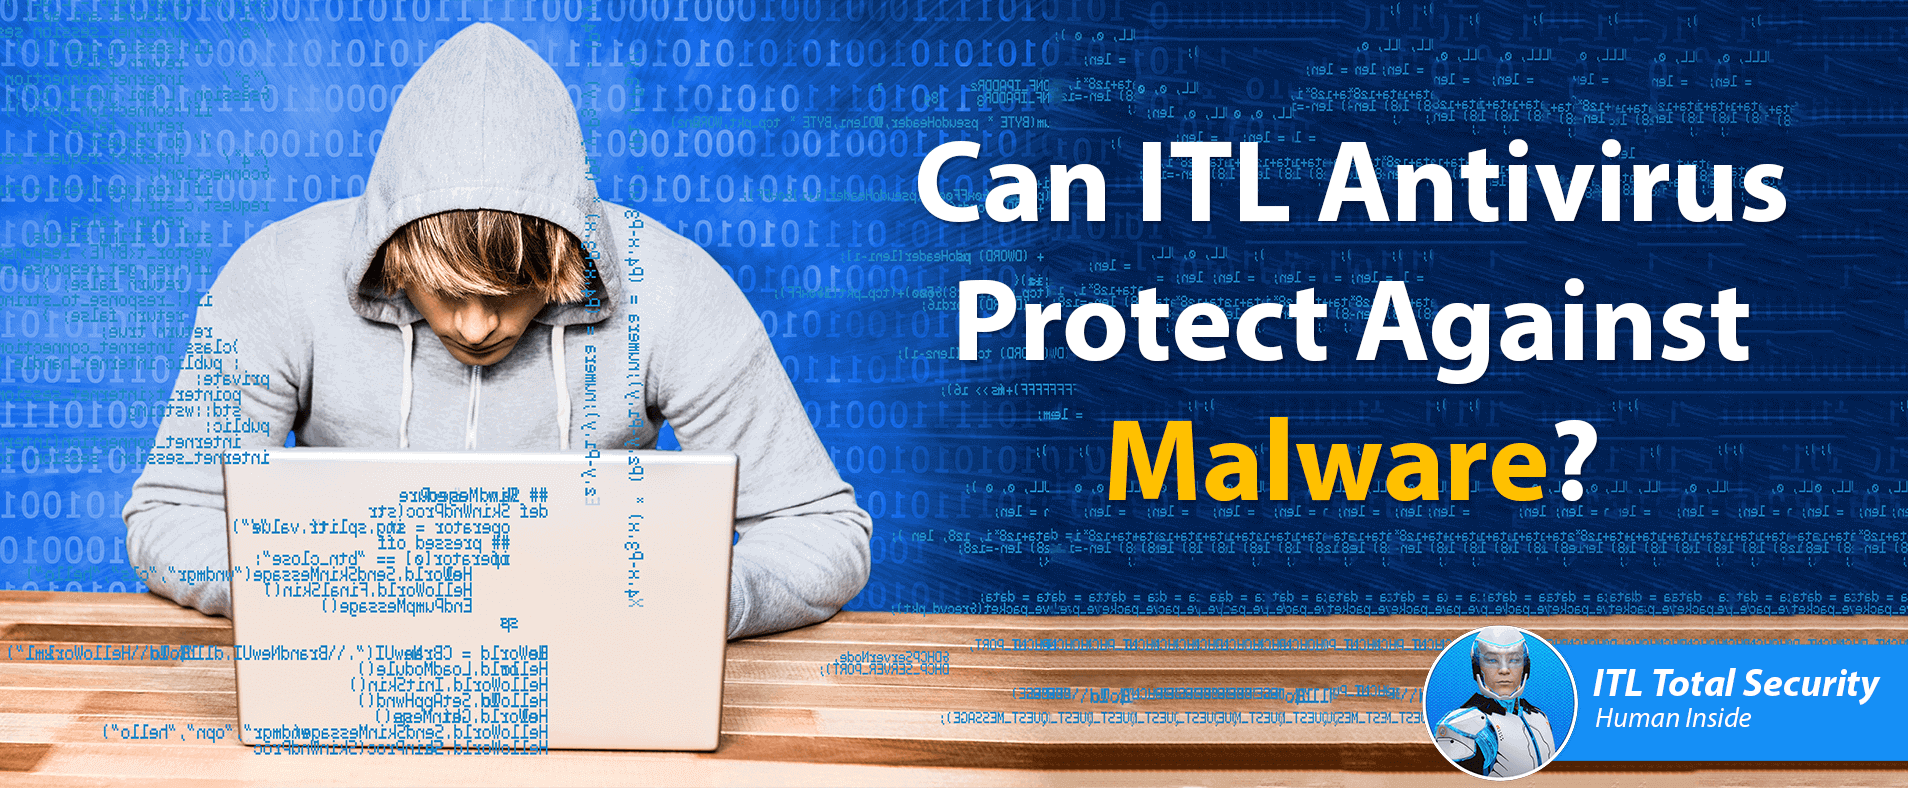 can itl antivirus protect against malware